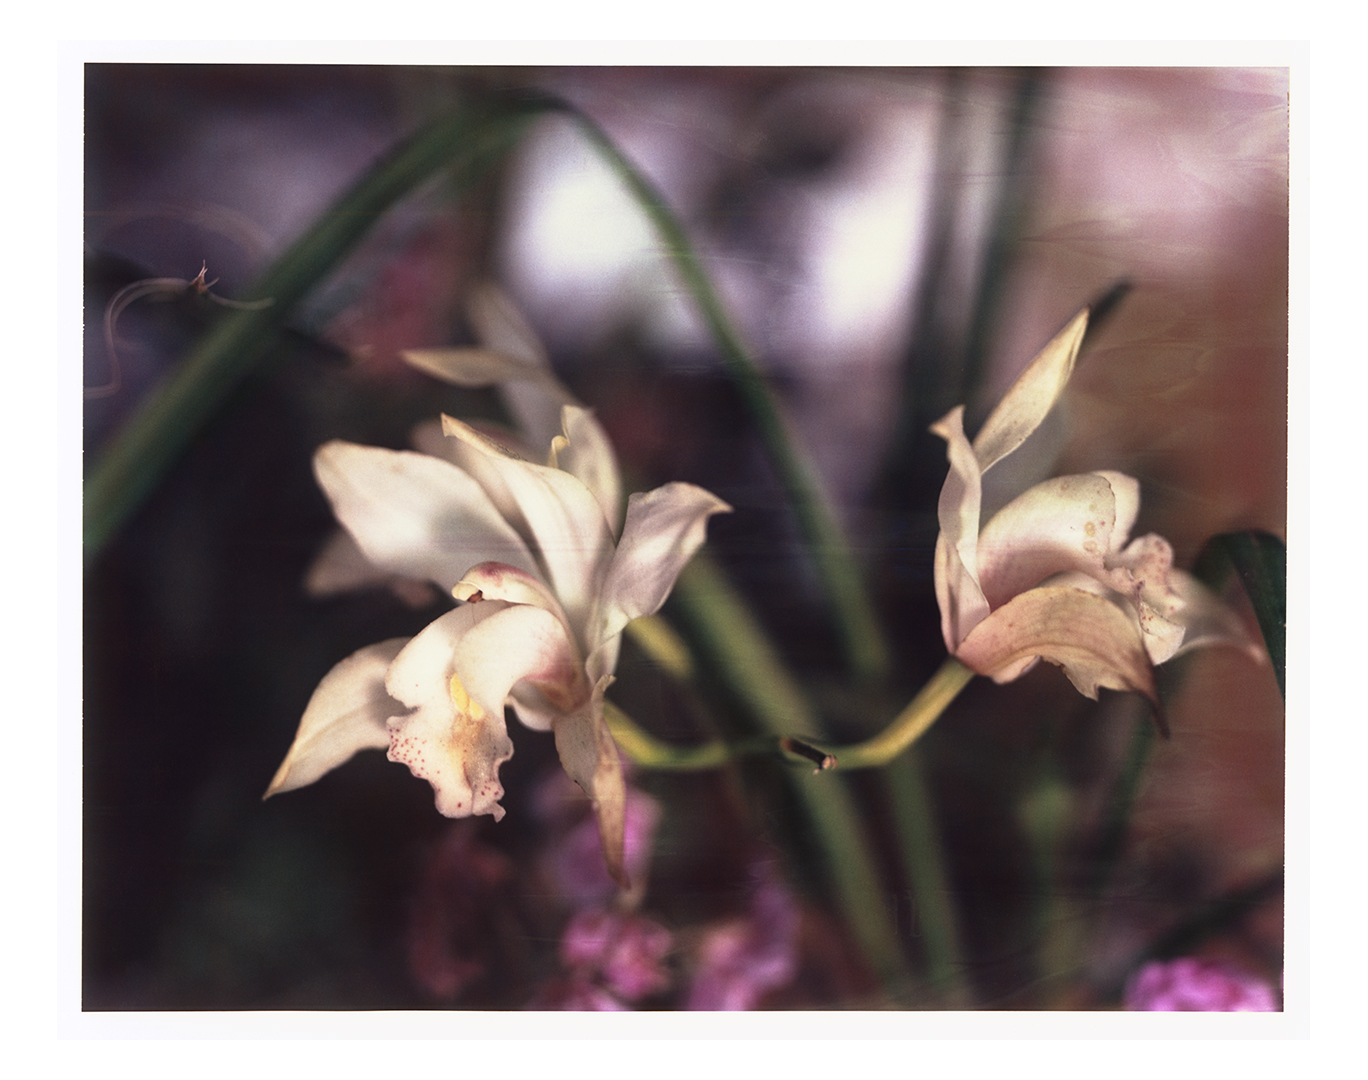 Orchid photographed 2005 - Polaroid 8x10